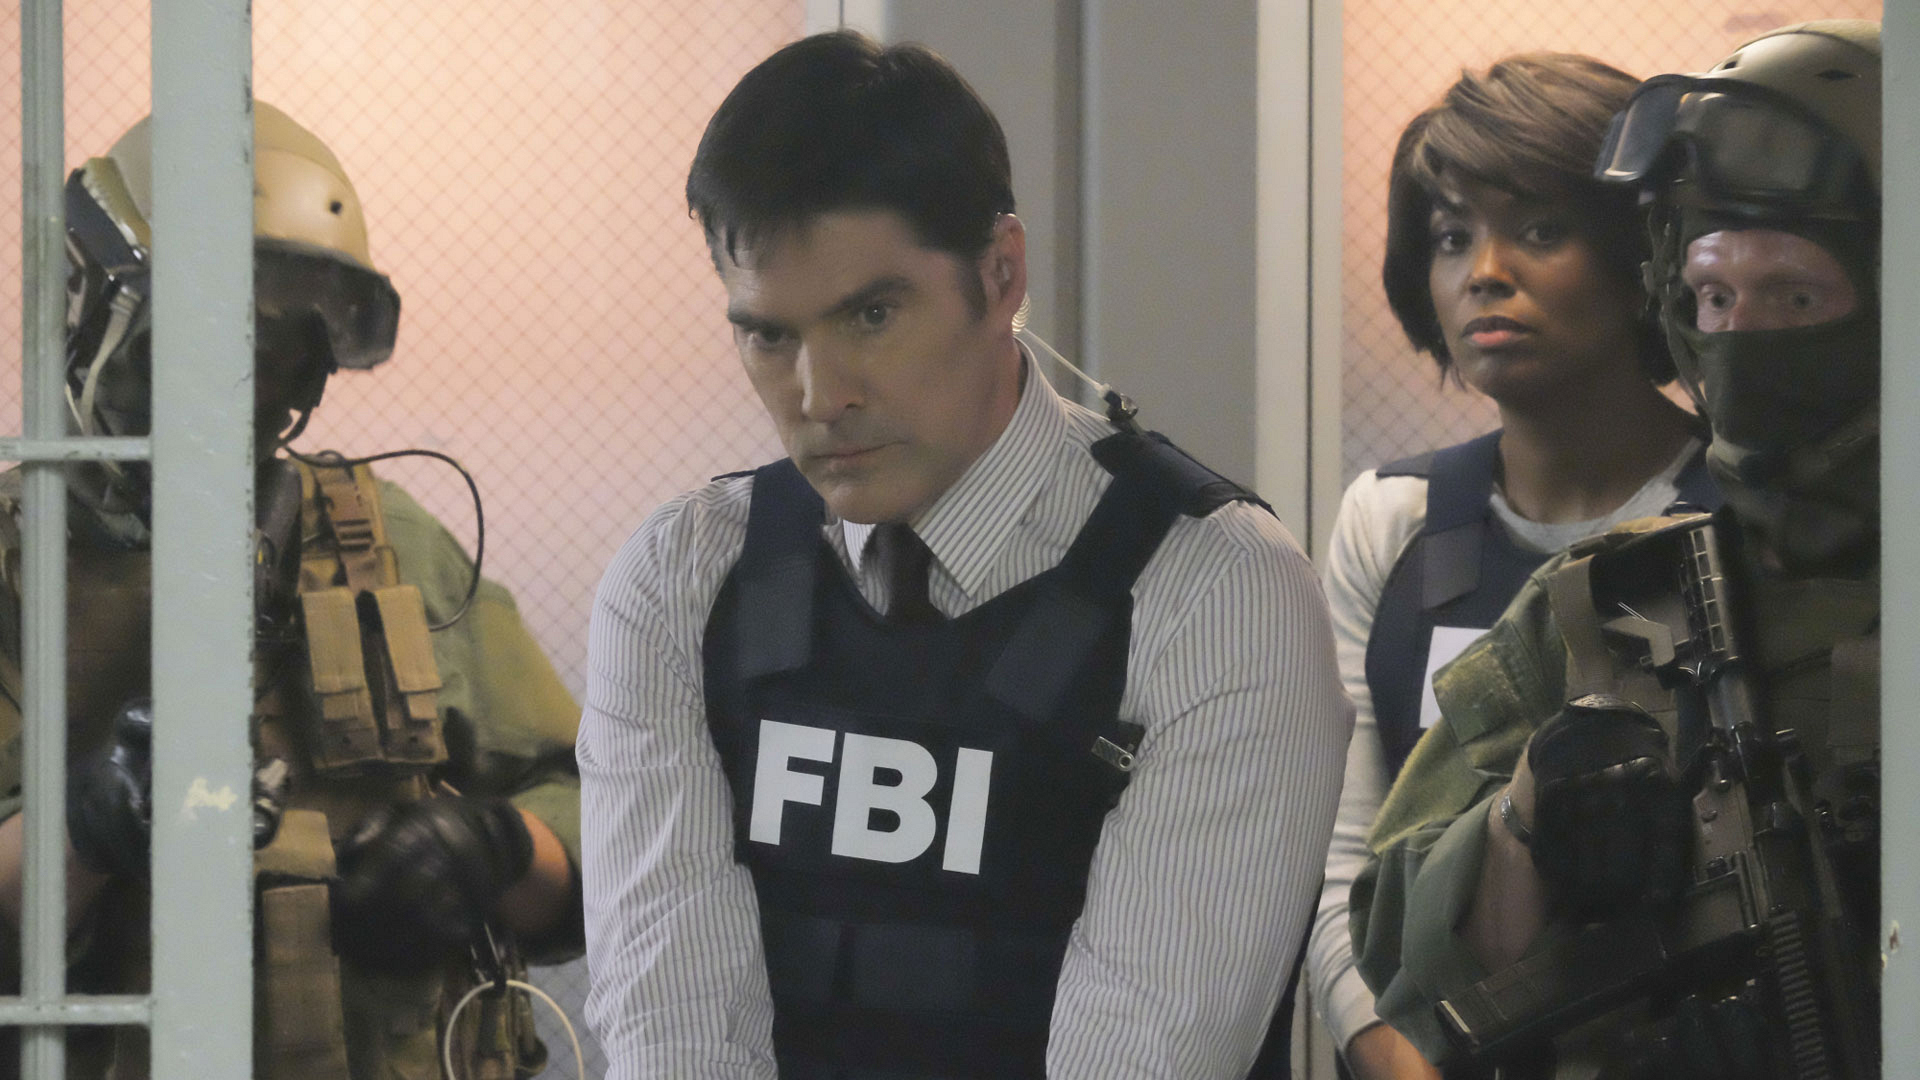 13 serial killers were released from a super-max prison on Criminal Minds.